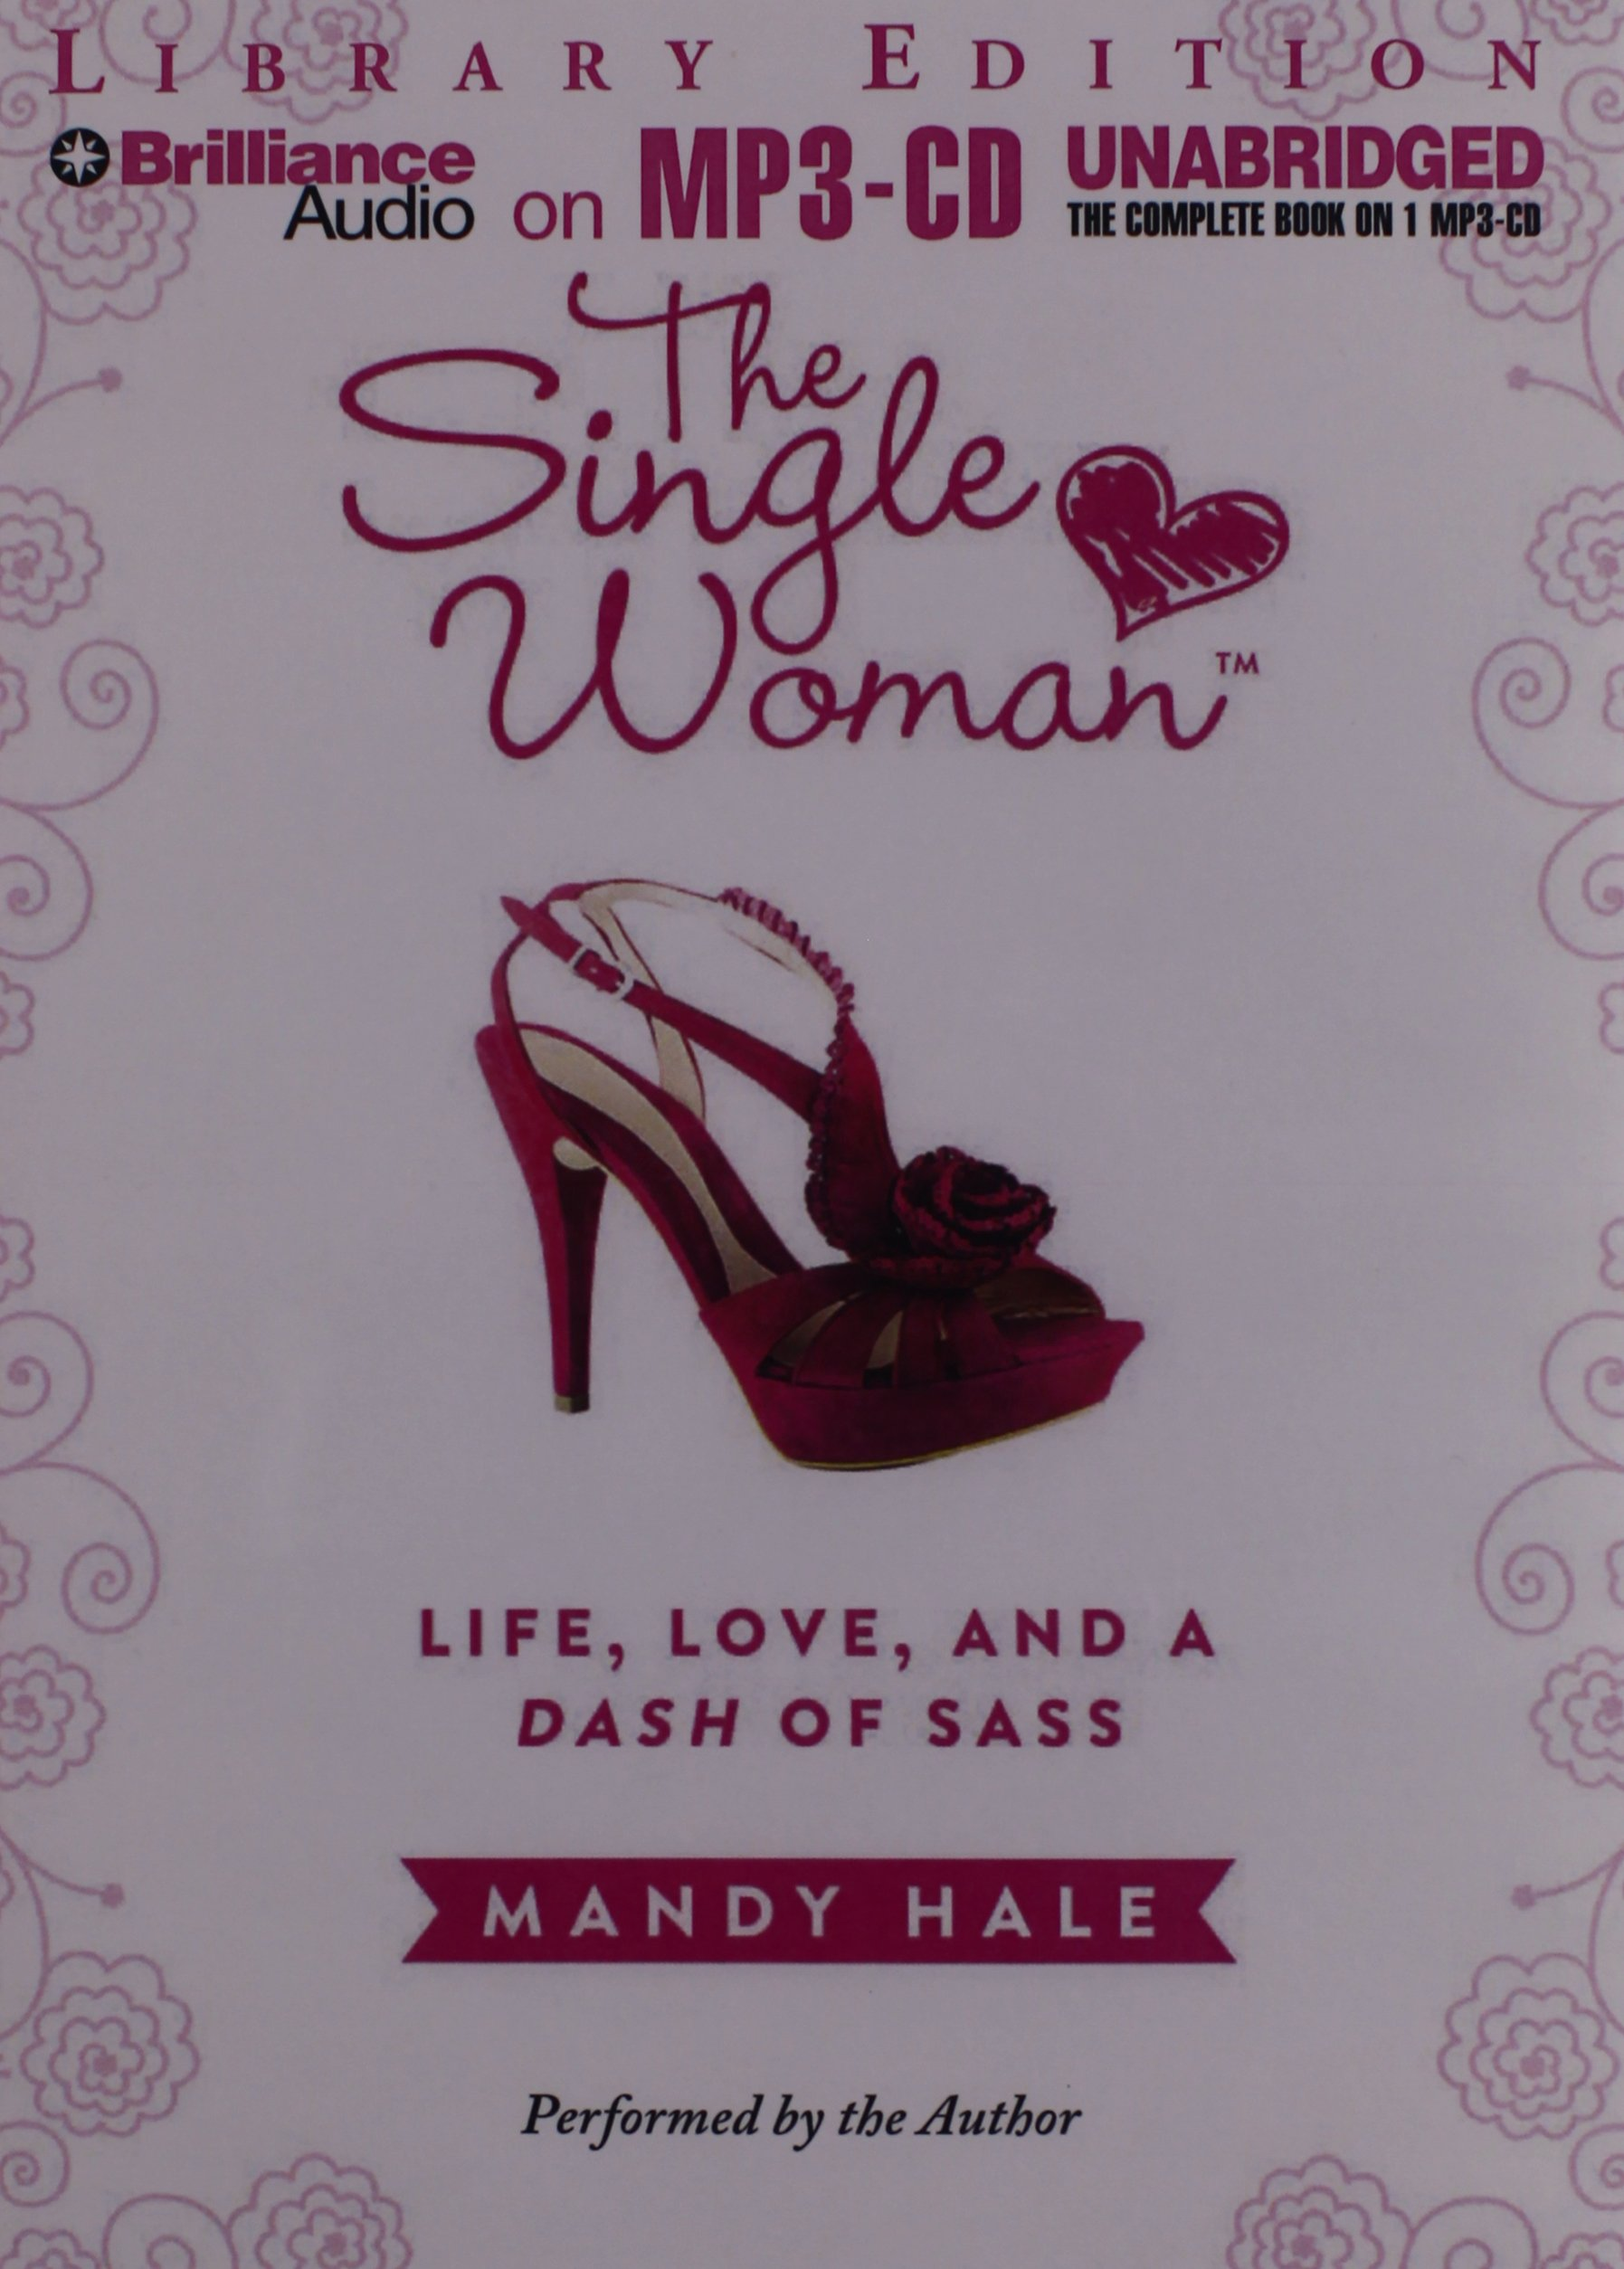 Read The Single Woman Life Love And A Dash Of Sass By Mandy Hale